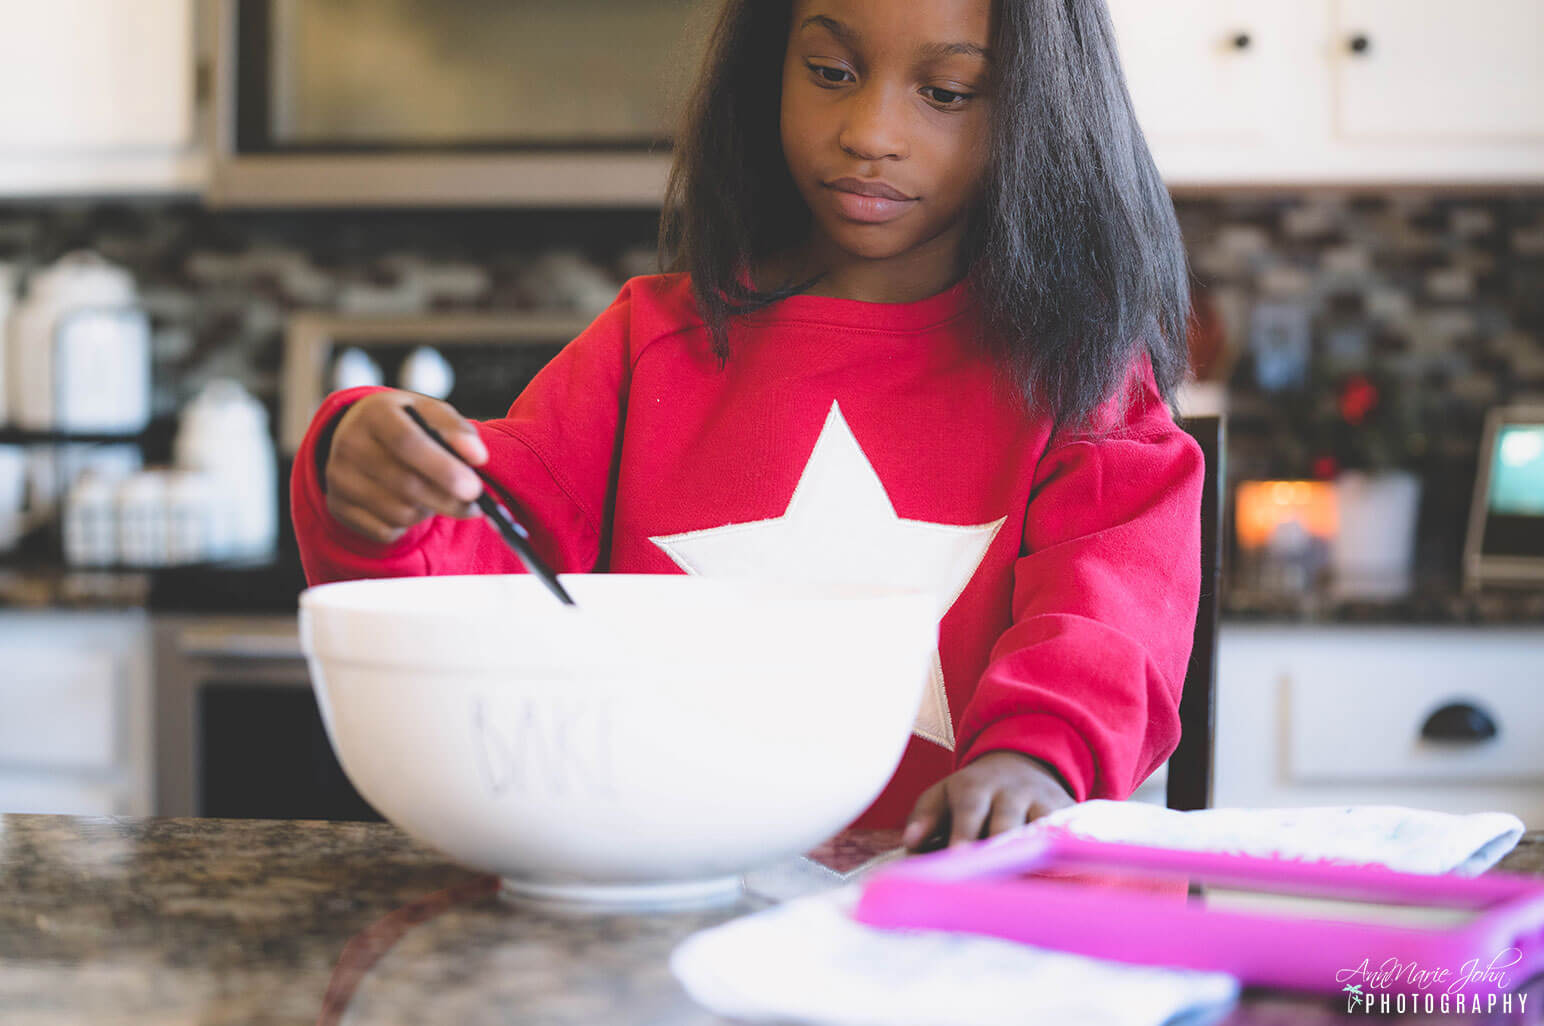 Life Skills to Teach Your Kids - Cooking